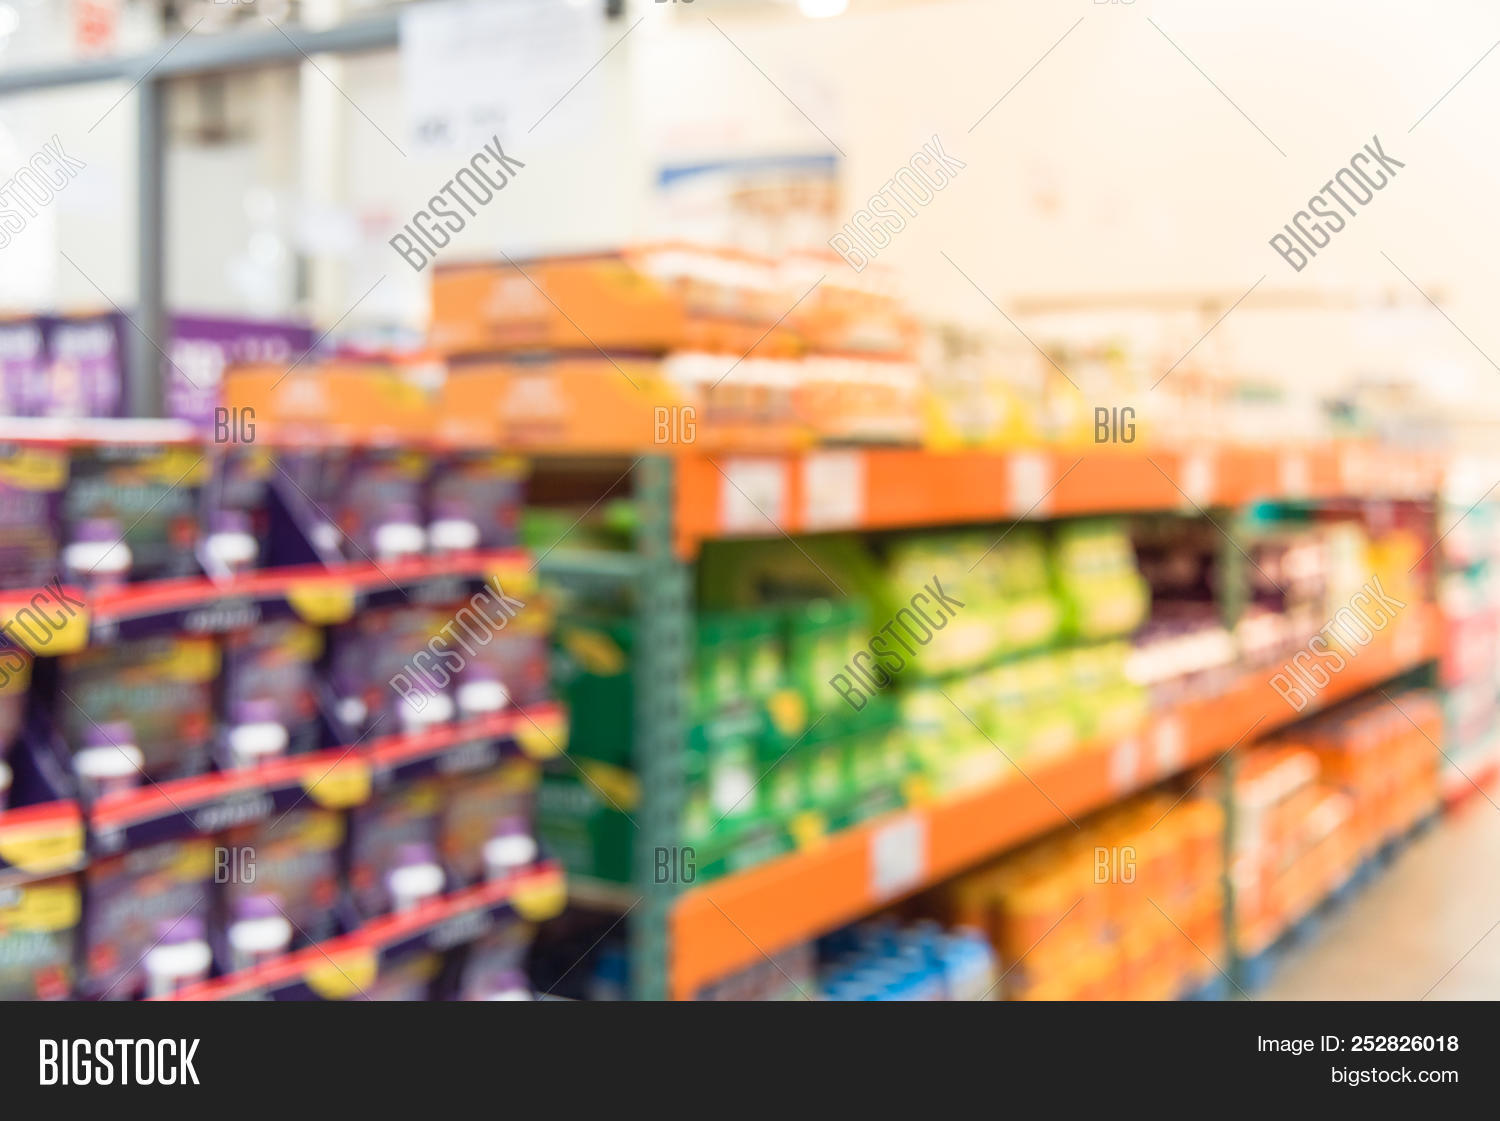 🔥 Abstract Blurred Vitamin Shelves And Huge Variation Of